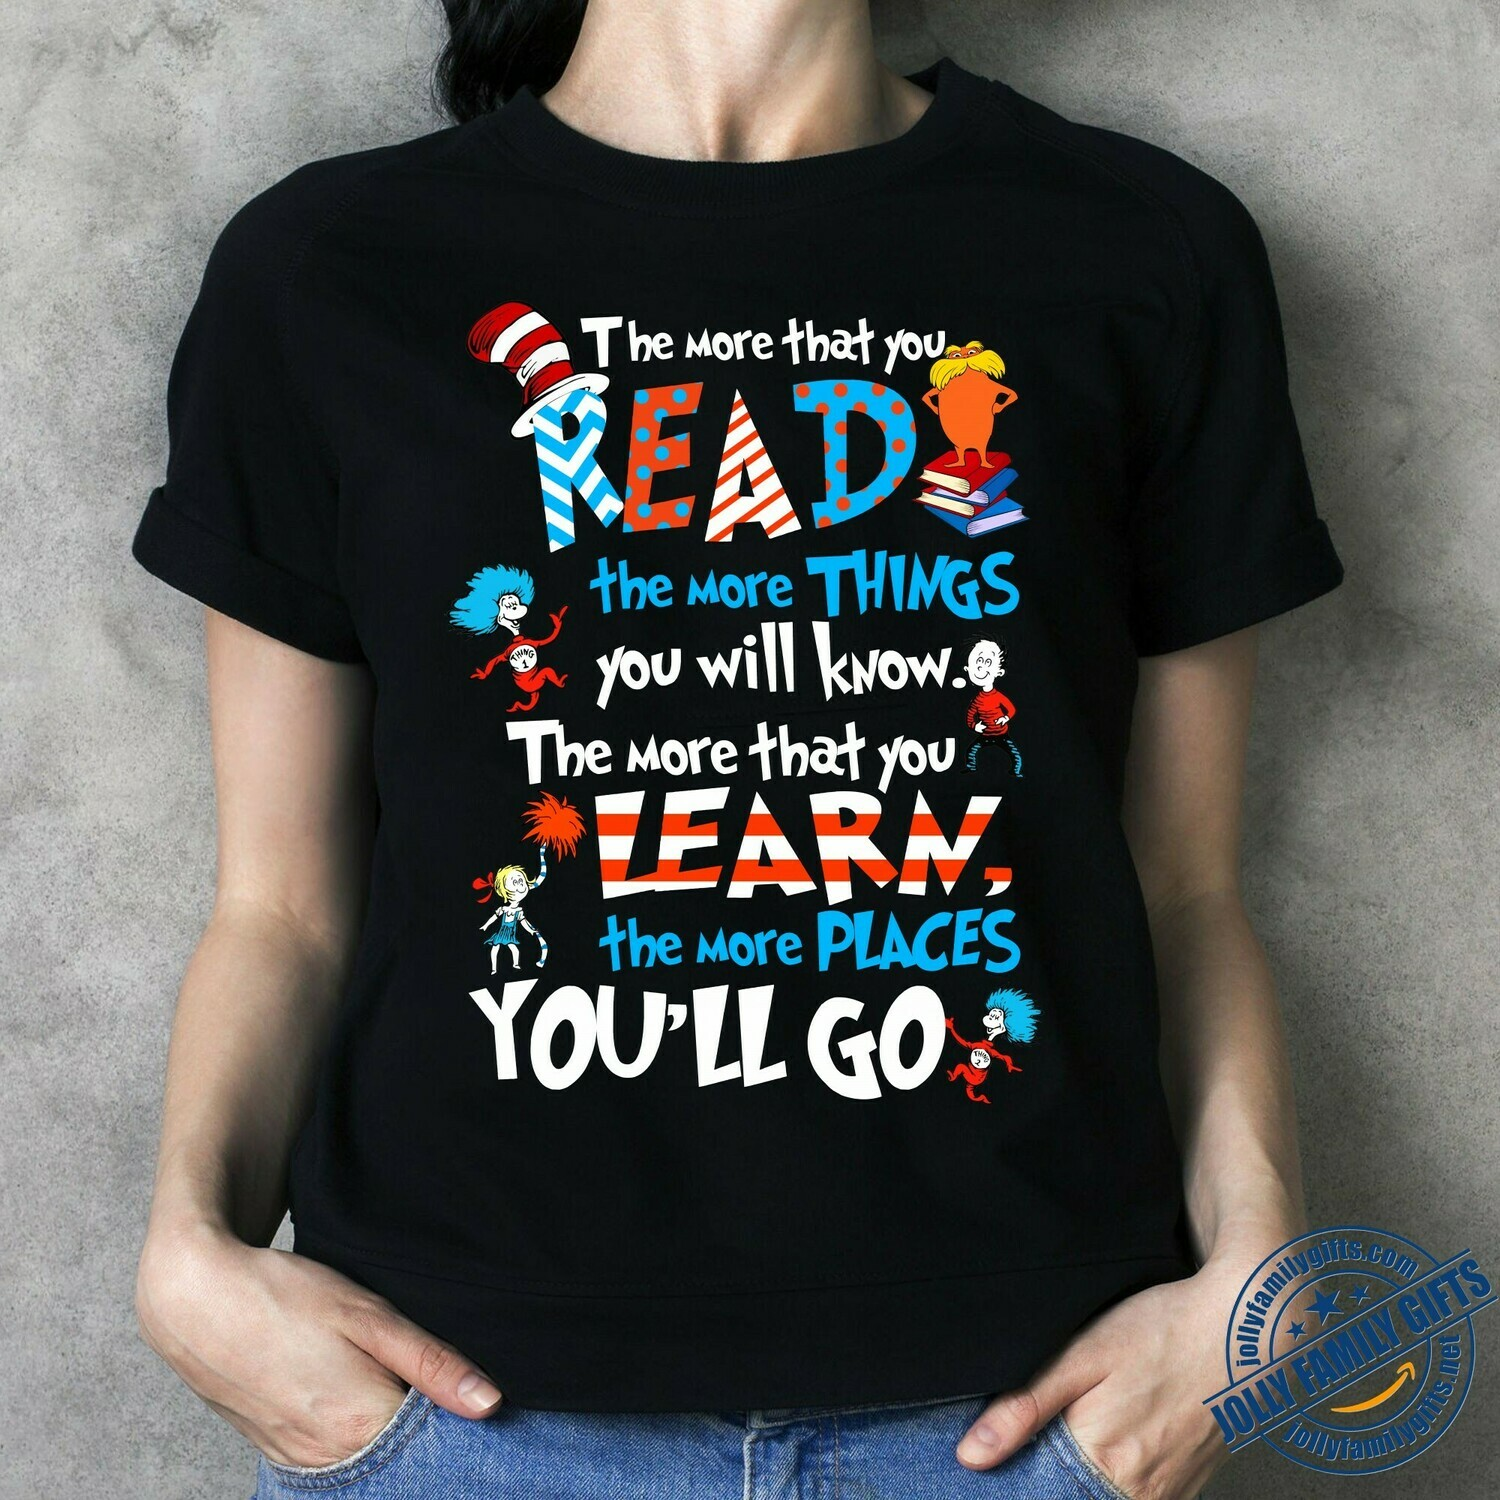 Dr Seuss The more that you Read the more things you will know,the more that you learn the more Place you'll Go  T-Shirt Hoodie Sweatshirt Sweater Tee Kids Youth Gifts Jolly Family Gifts